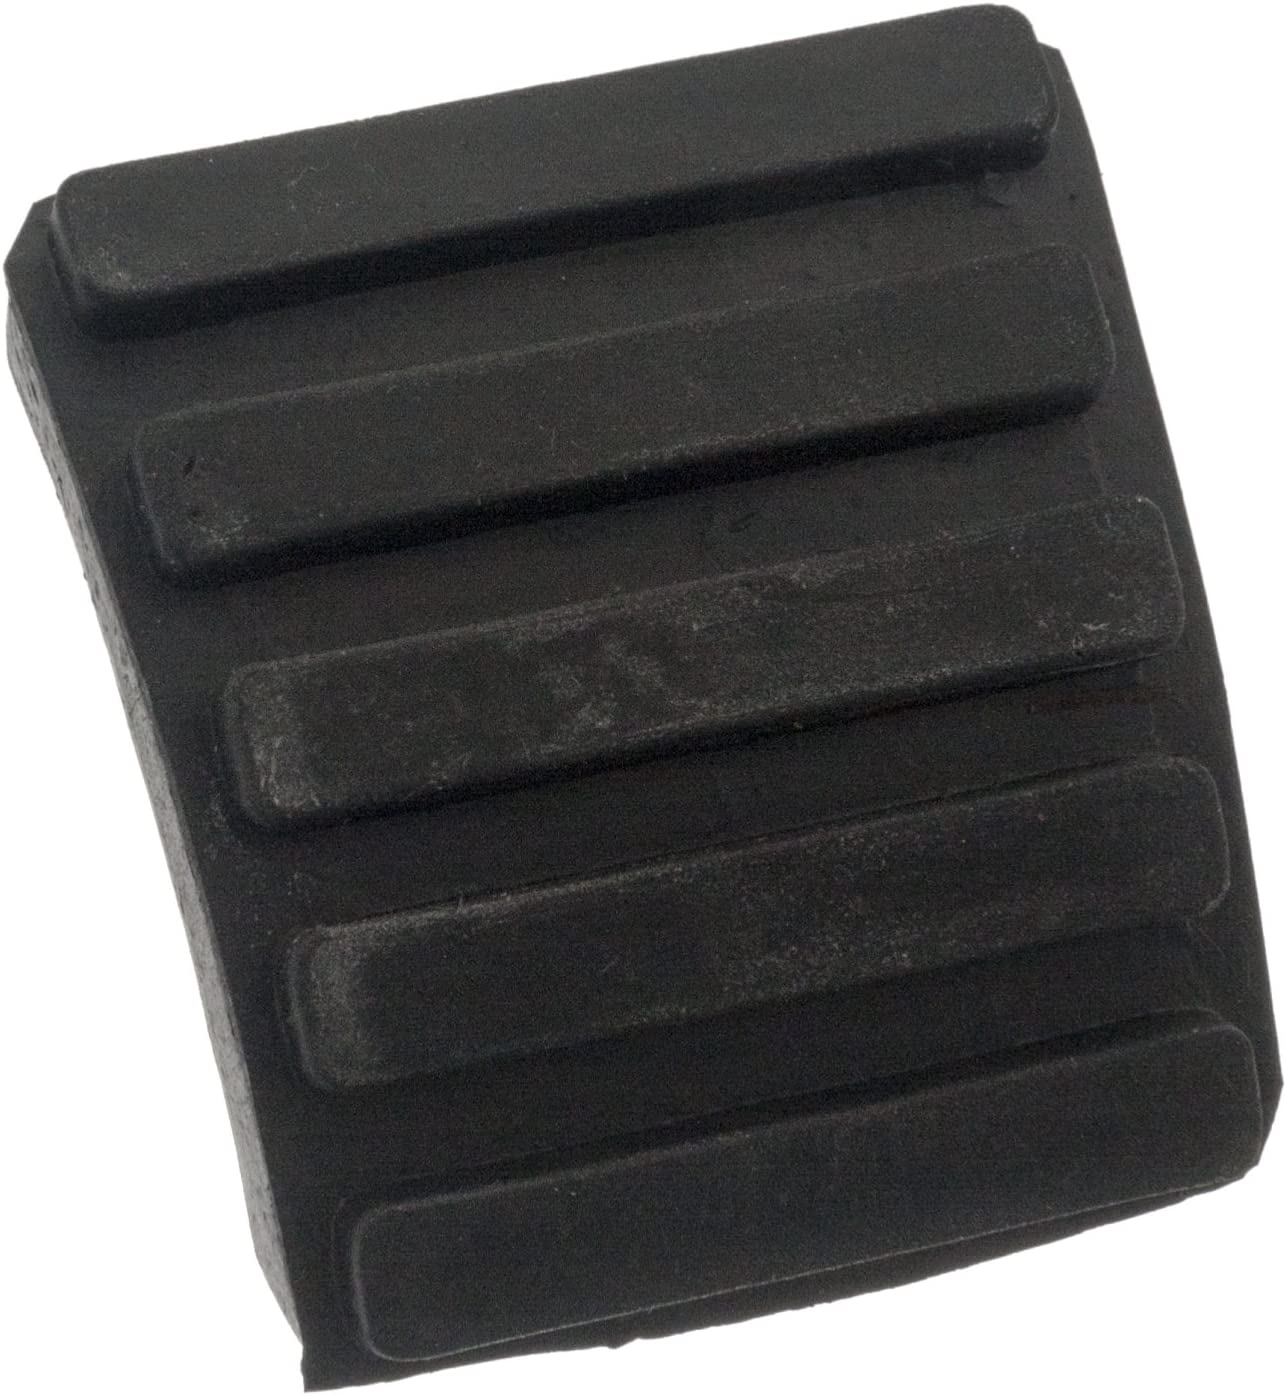 and brake pedal pack of one febi bilstein 10389 Pedal Pad for clutch